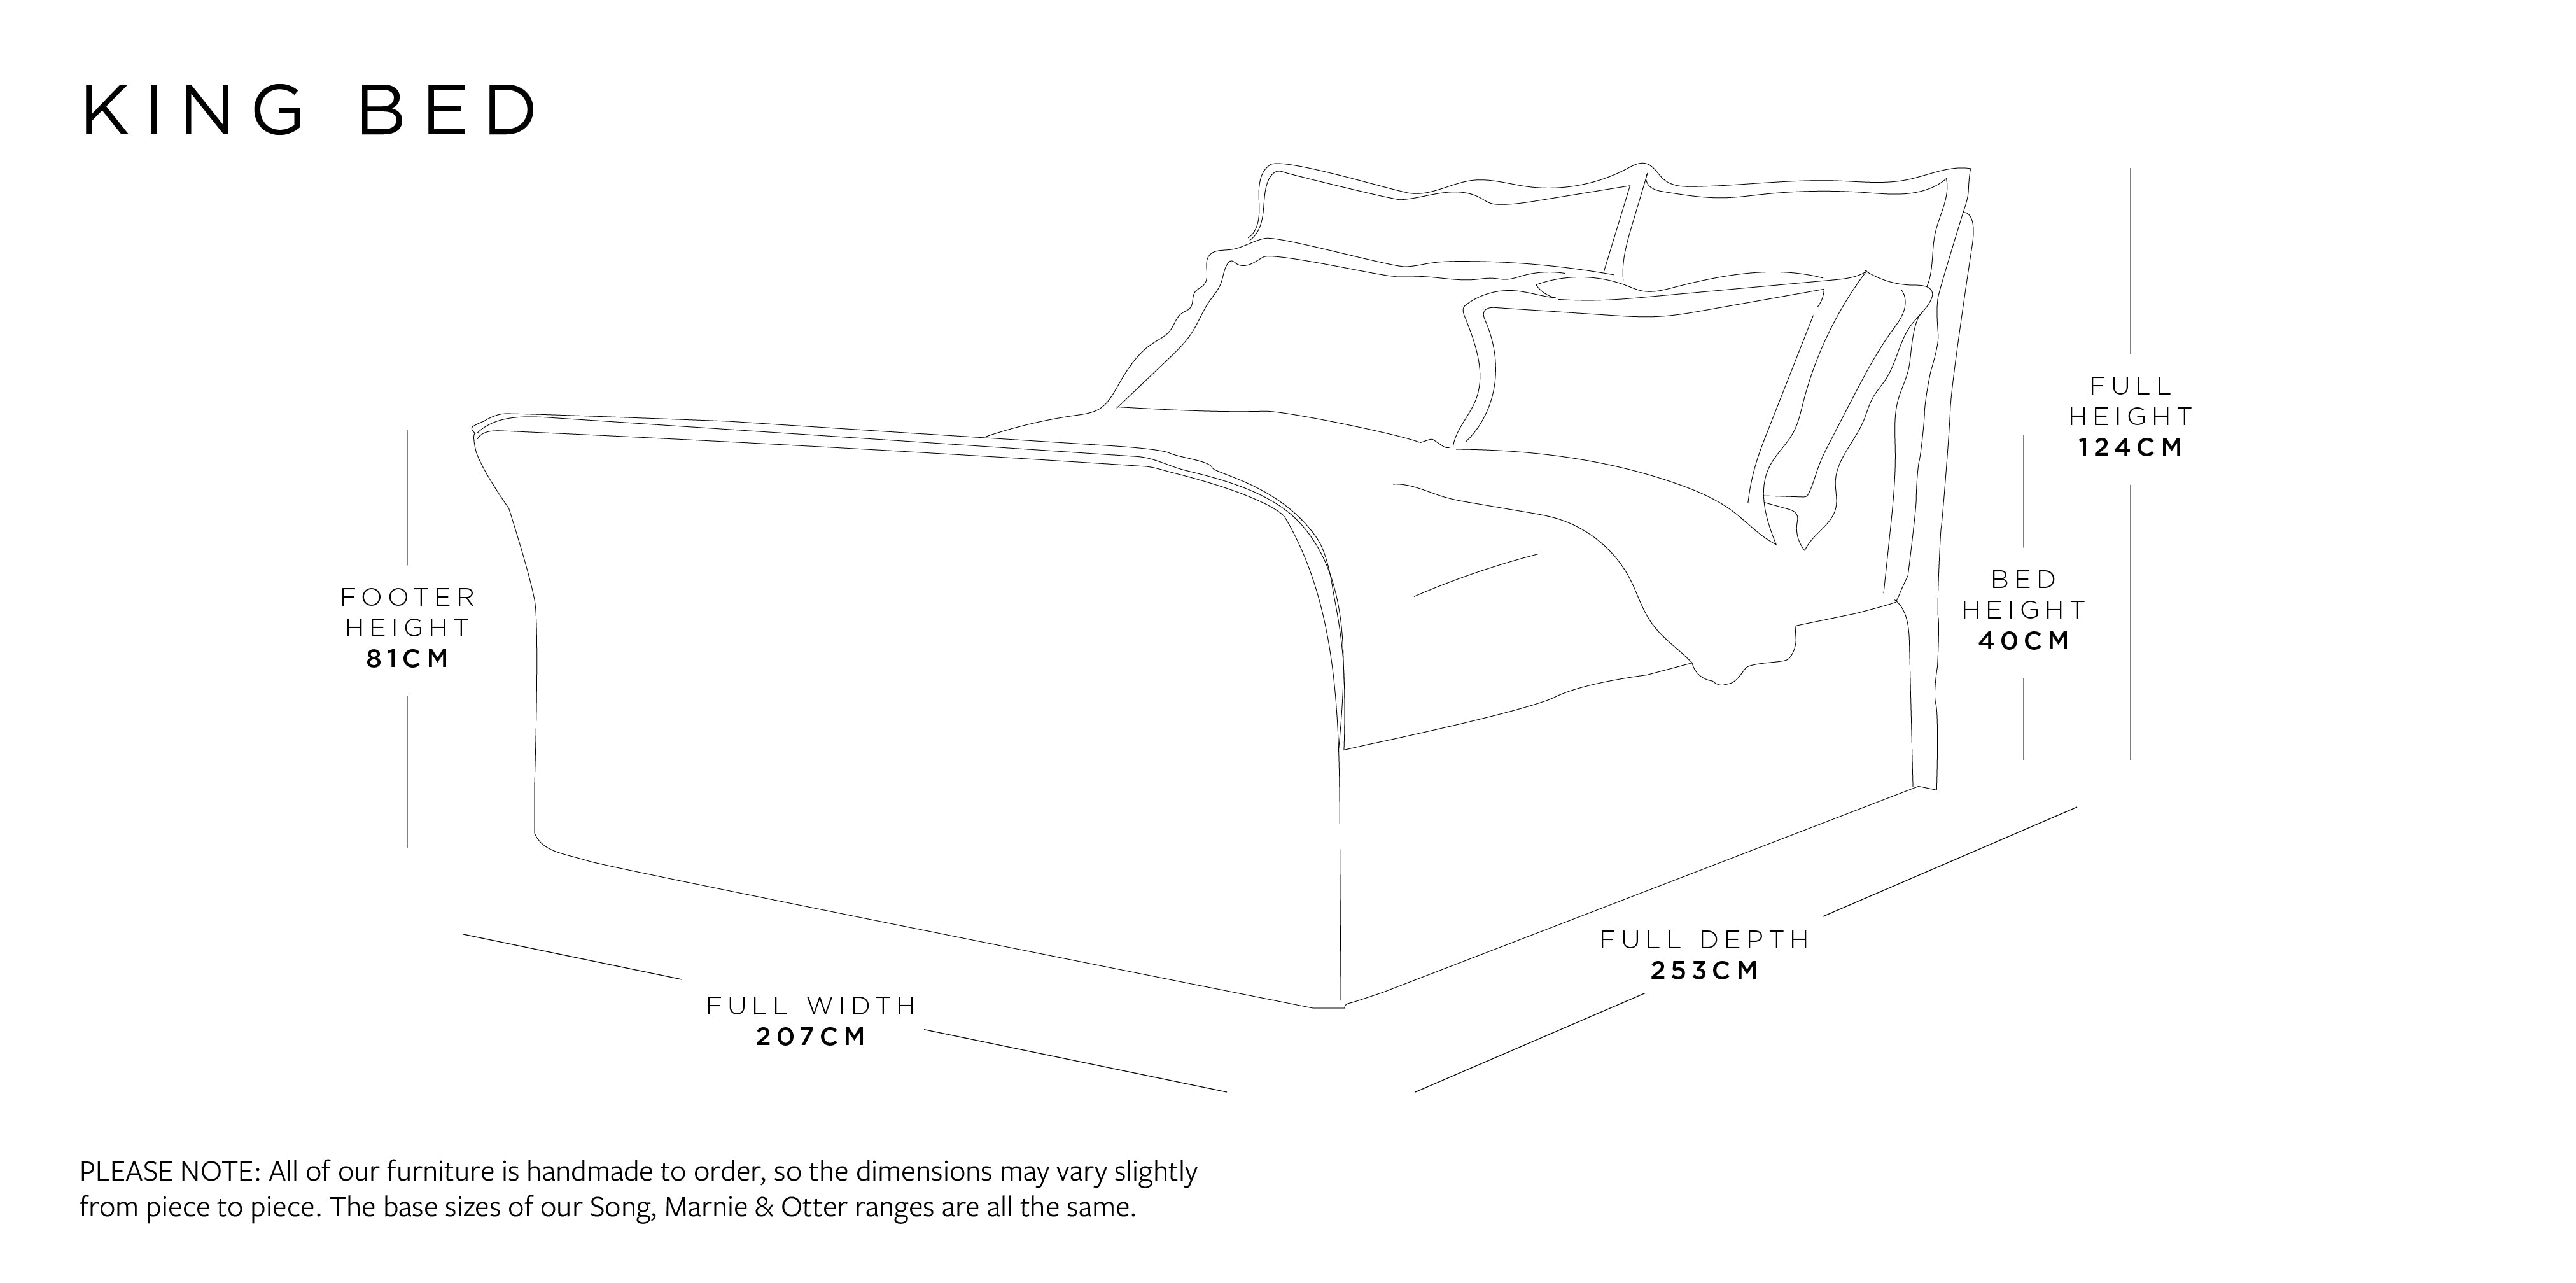 King Bed Dimensions